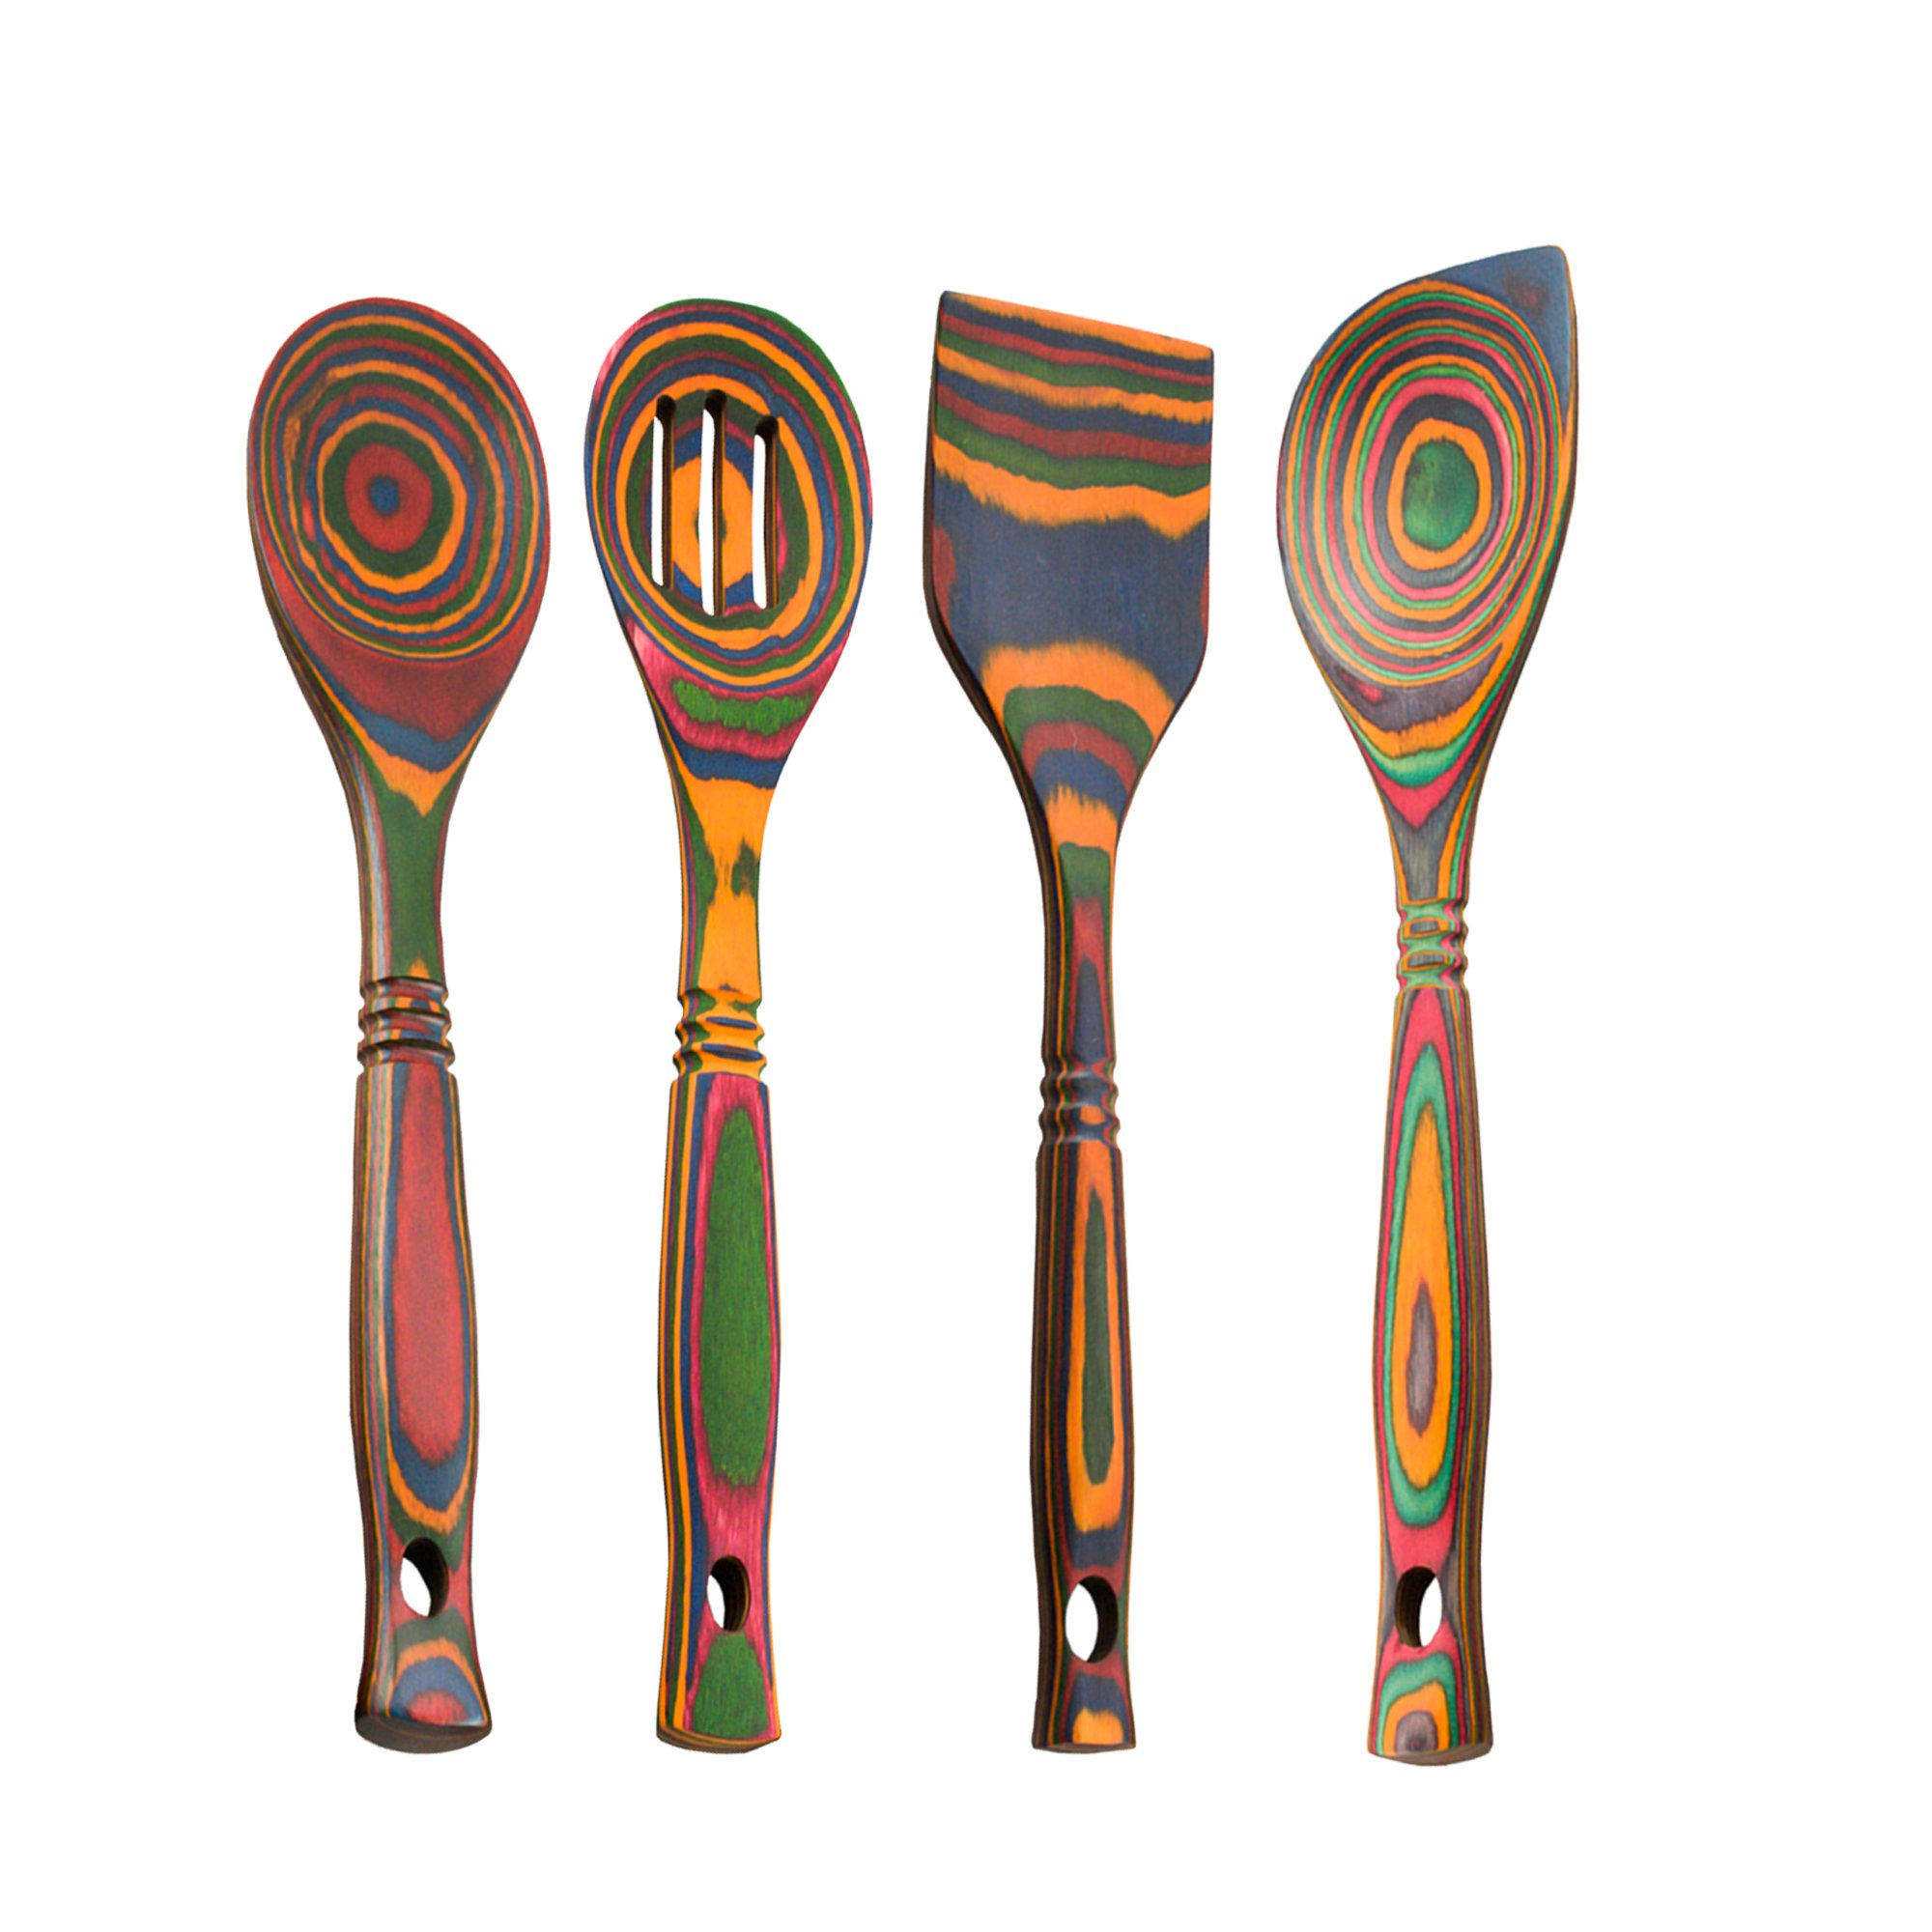 Island Bamboo Rainbow Pakkawood 12'' Wooden Spoon Set of 4 with Standard Spoon, Slotted Spoon, Corner Spoon, and Straight-Edge Spatula